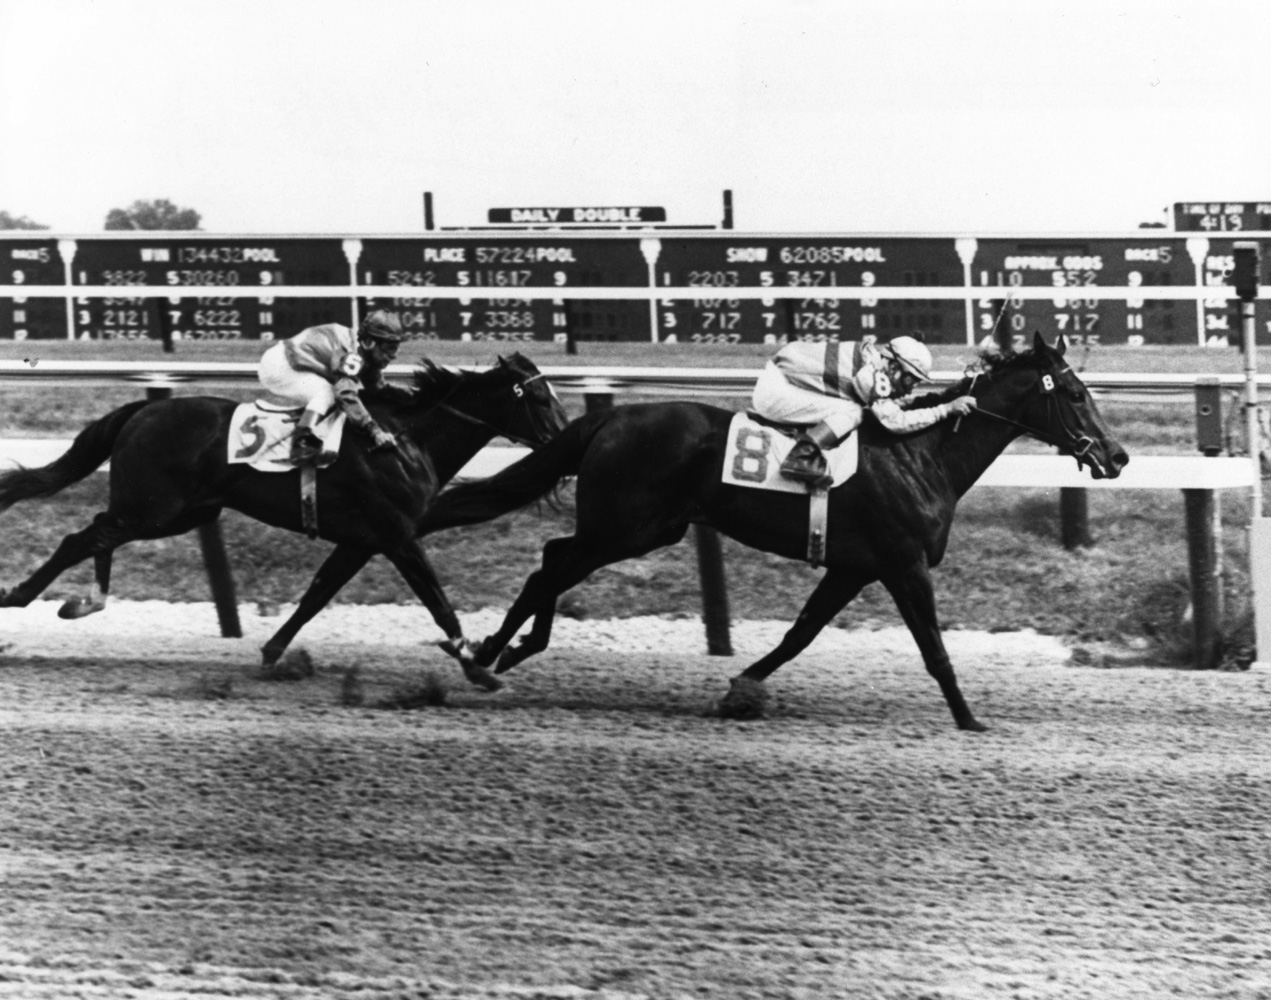 Affectionately (Ismael Valenzuela up) winning the 1962 Polly Drummond Stakes at Delaware Park (The BloodHorse/Museum Collection)